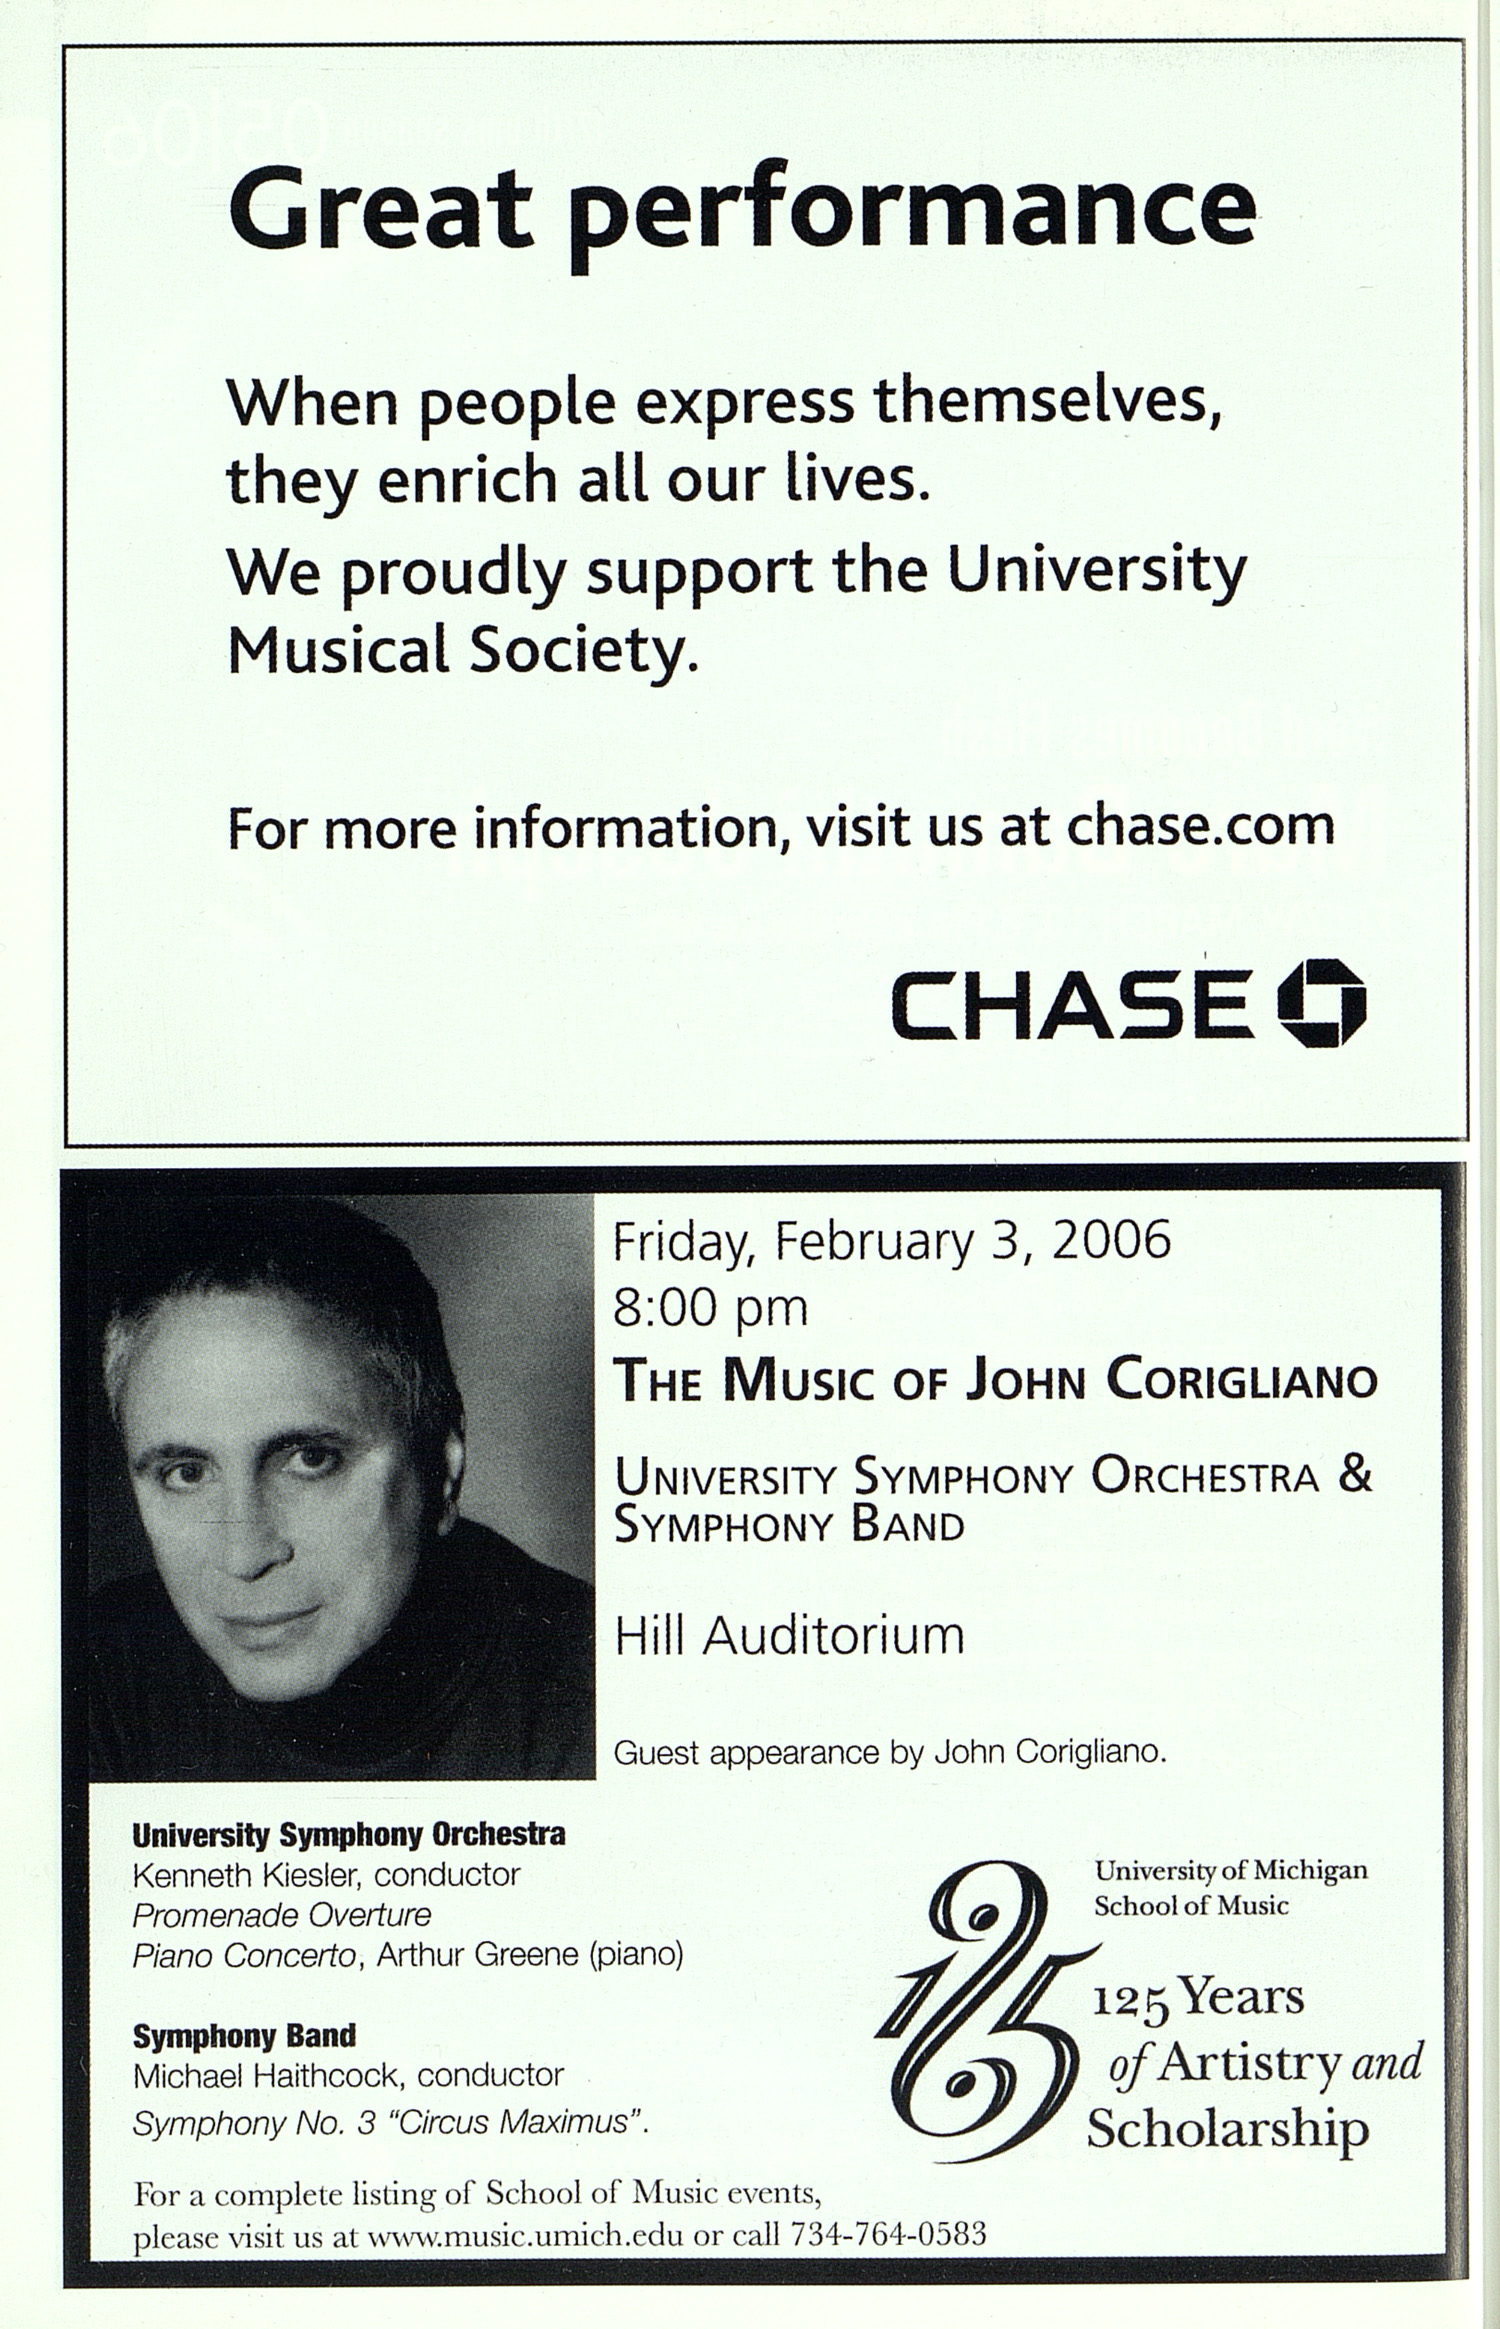 UMS Concert Program, Friday Jan. 13 To 19: University Musical Society: Winter 06 - Friday Jan. 13 To 19 --  image